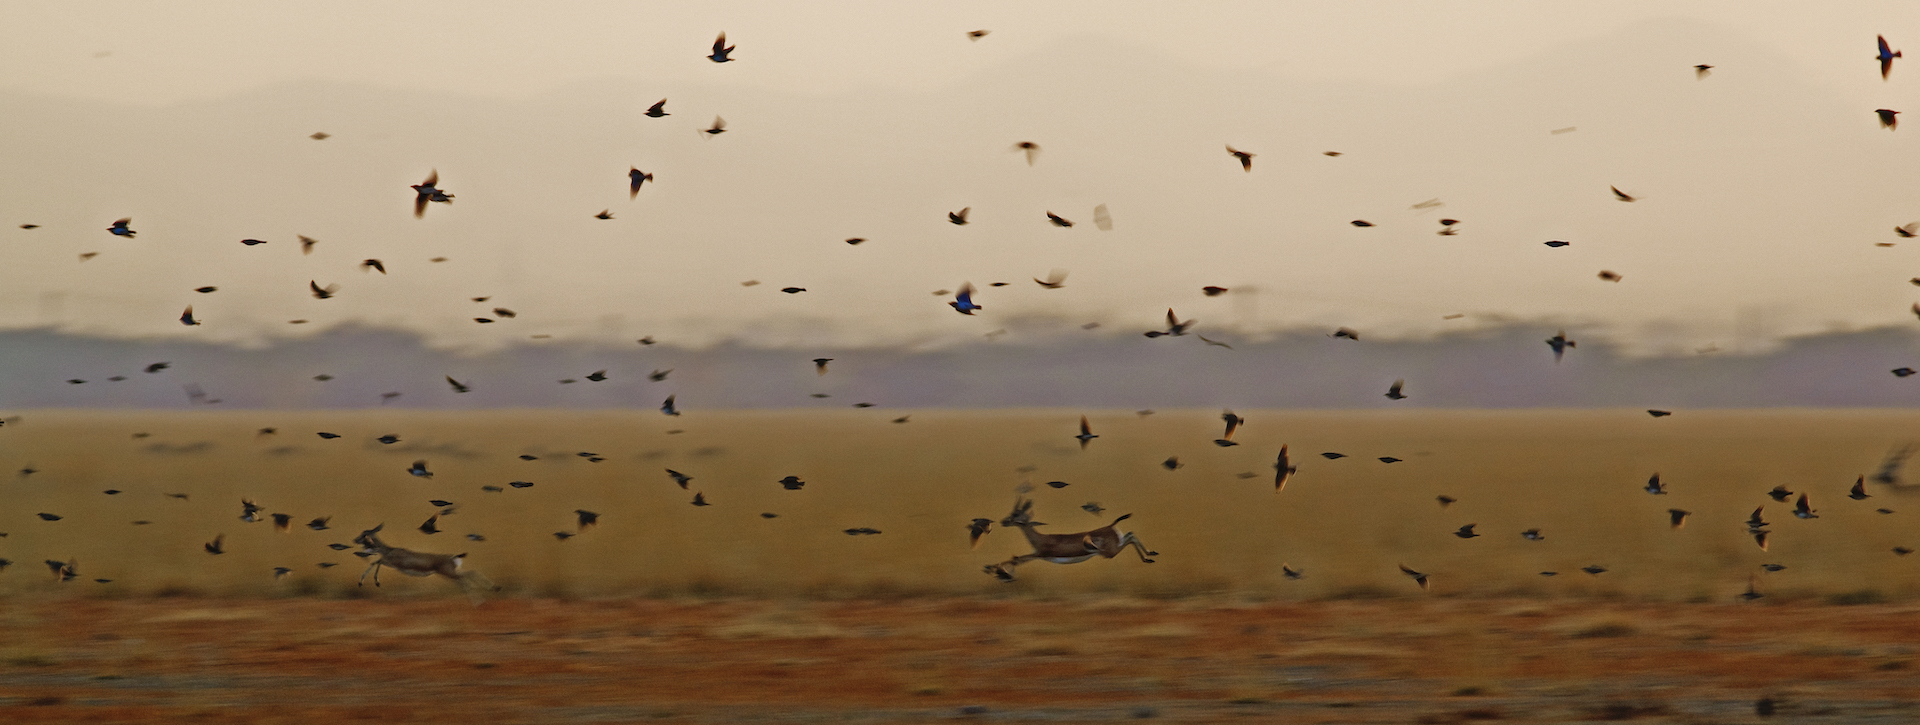 A flock of larks flies over sprinting blackbuck in Tal Chhapar at sunset. The sanctuary is a paradise for birdwatchers, that flock to the area to photograph migratory birds and raptors. Photo: Dhritiman Mukherjee